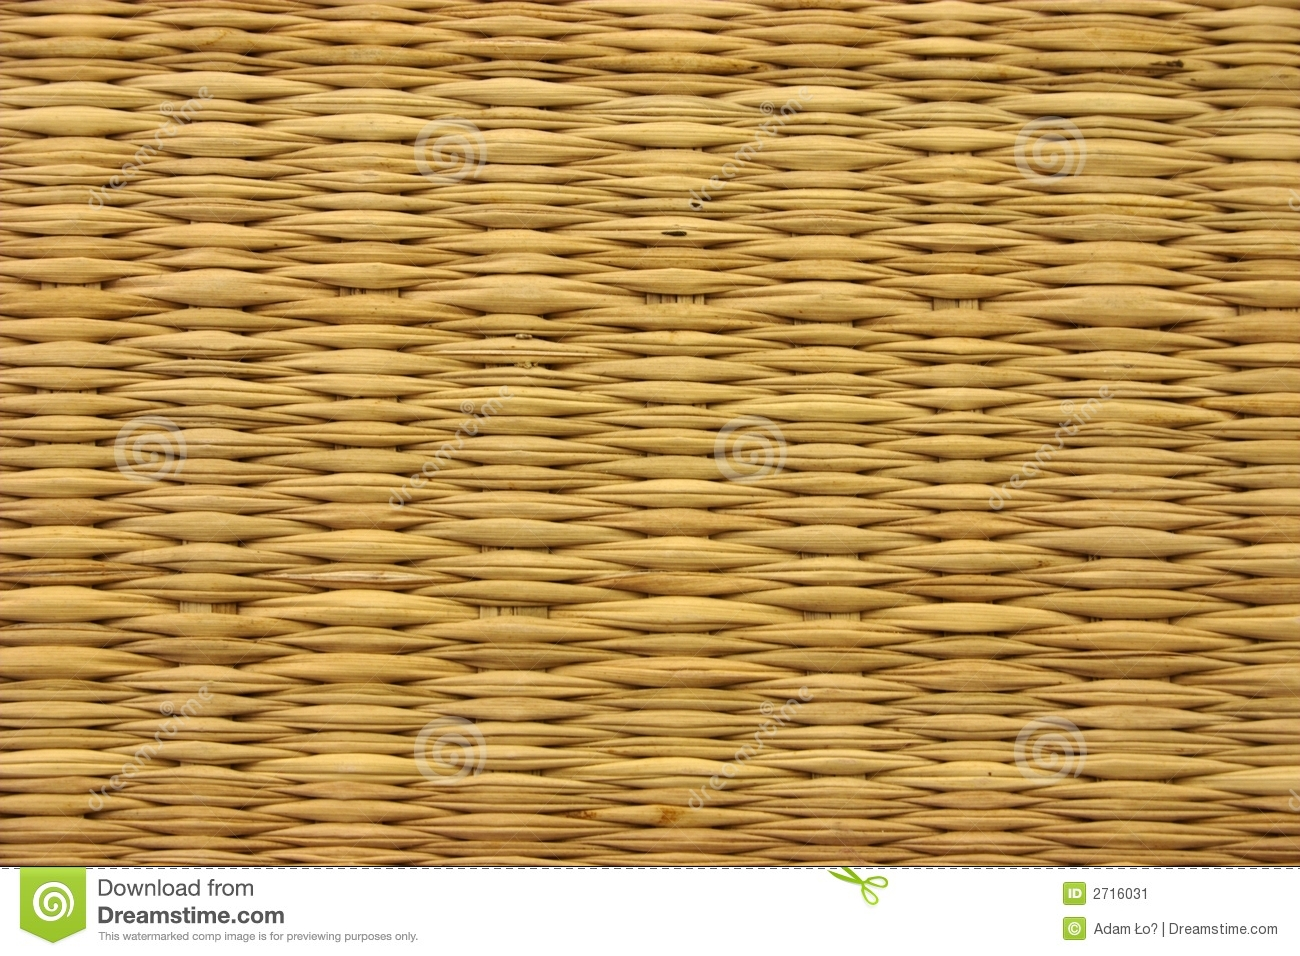 Seagrass Mat Stock Image Image 2716031